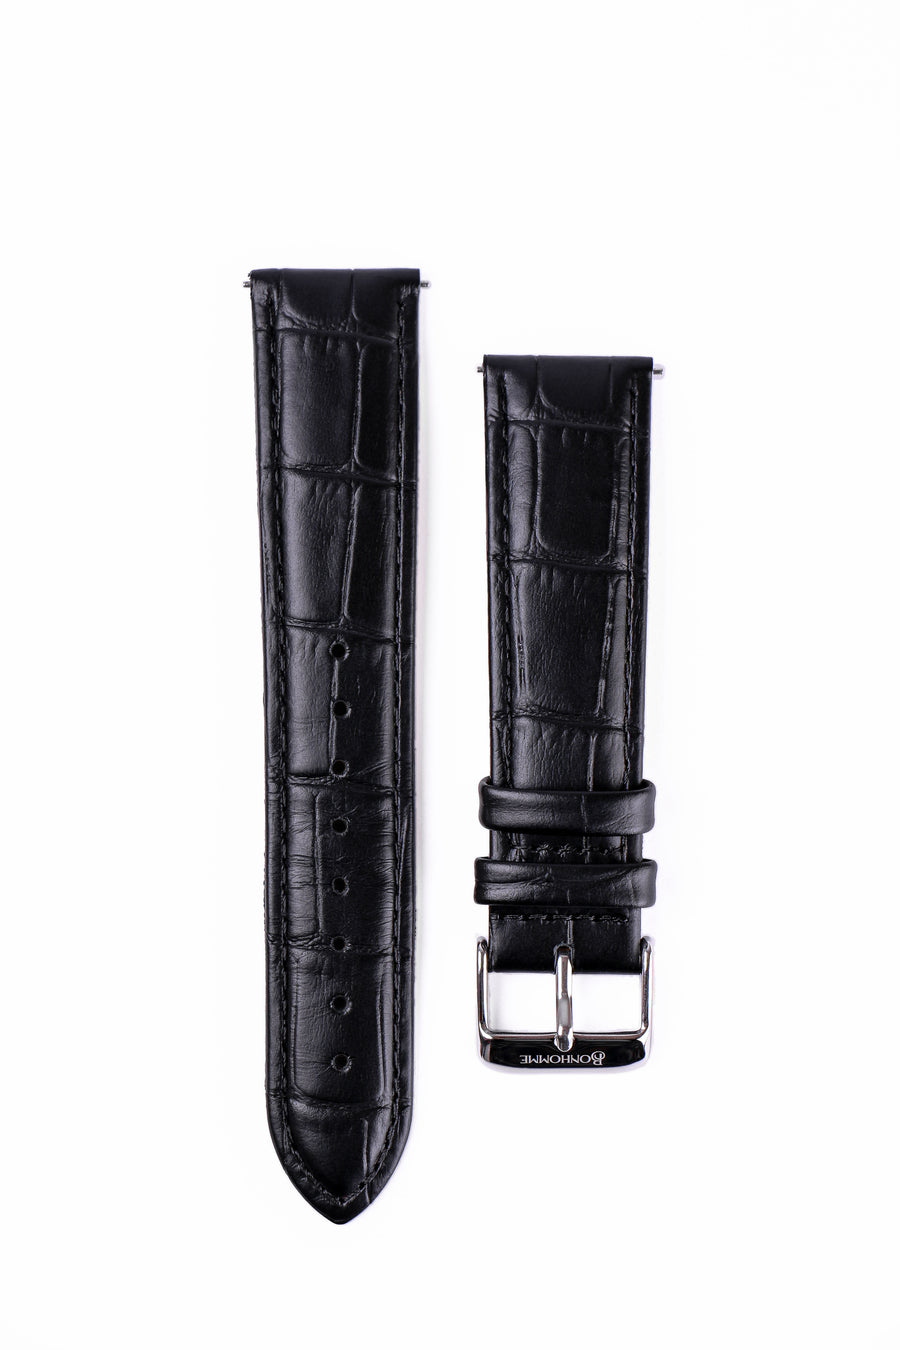 Black Croc Leather watch strap with engraved silver buckle